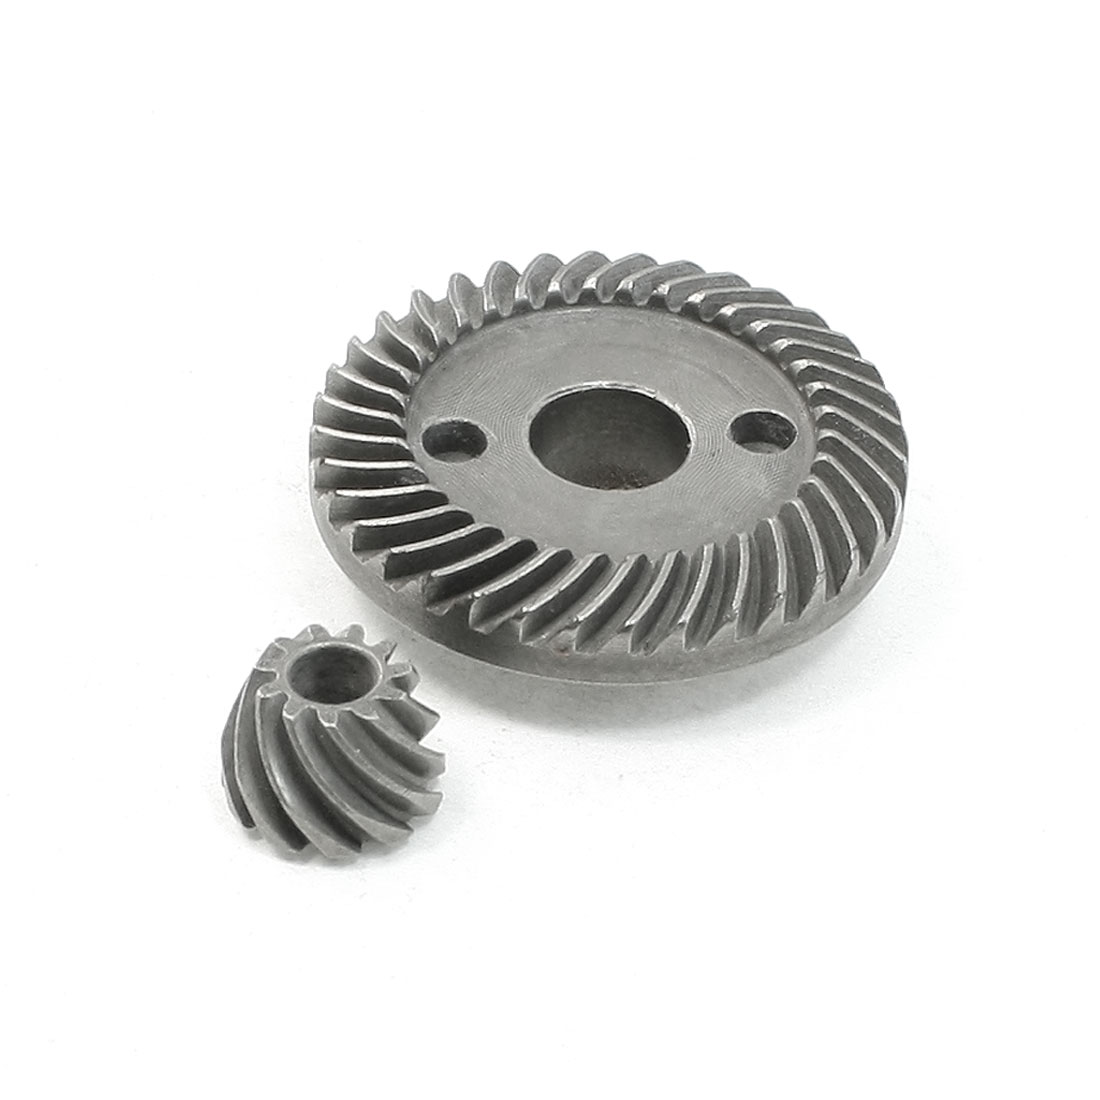 Repair Part Spiral Bevel Gear Pinion Set for RYOBI 100 Angle Grinder